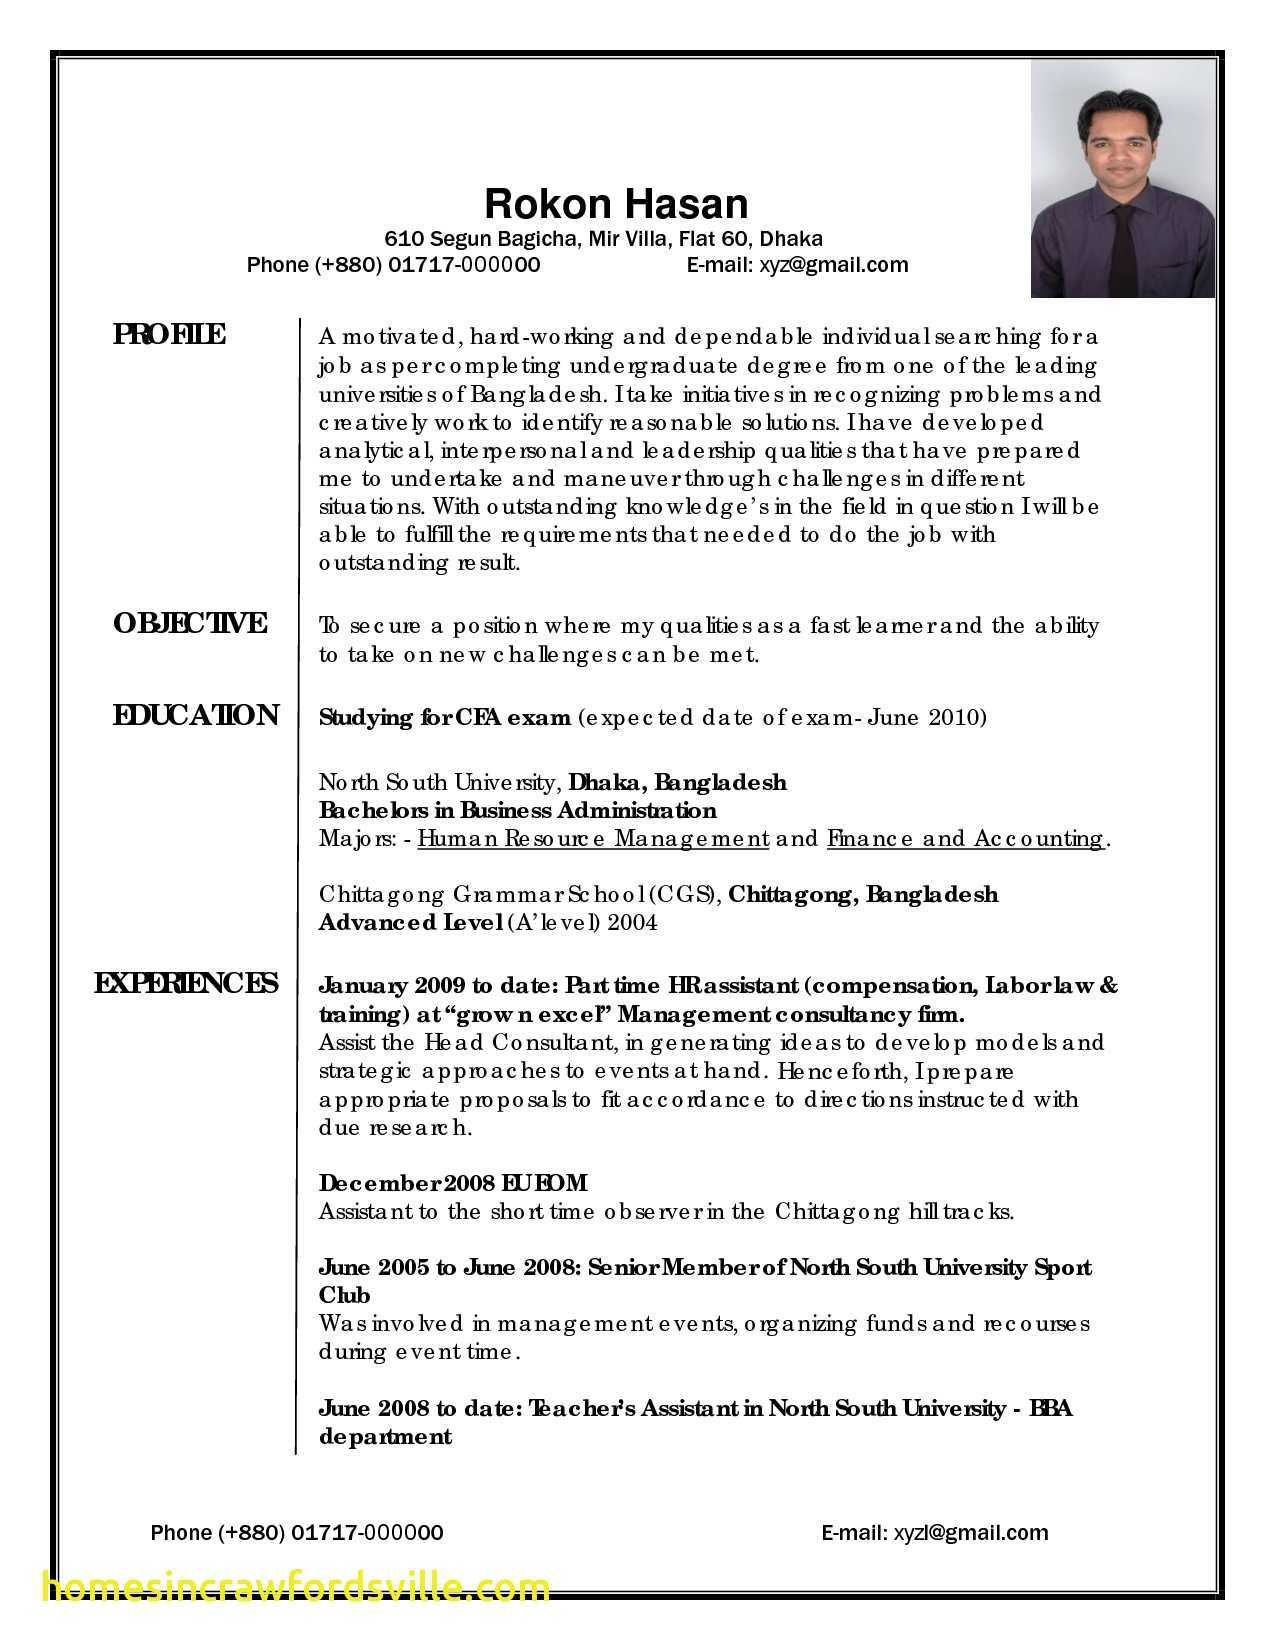 Pin By Personal On Resume Template Resume Writing Services Resume Writing Writing Services